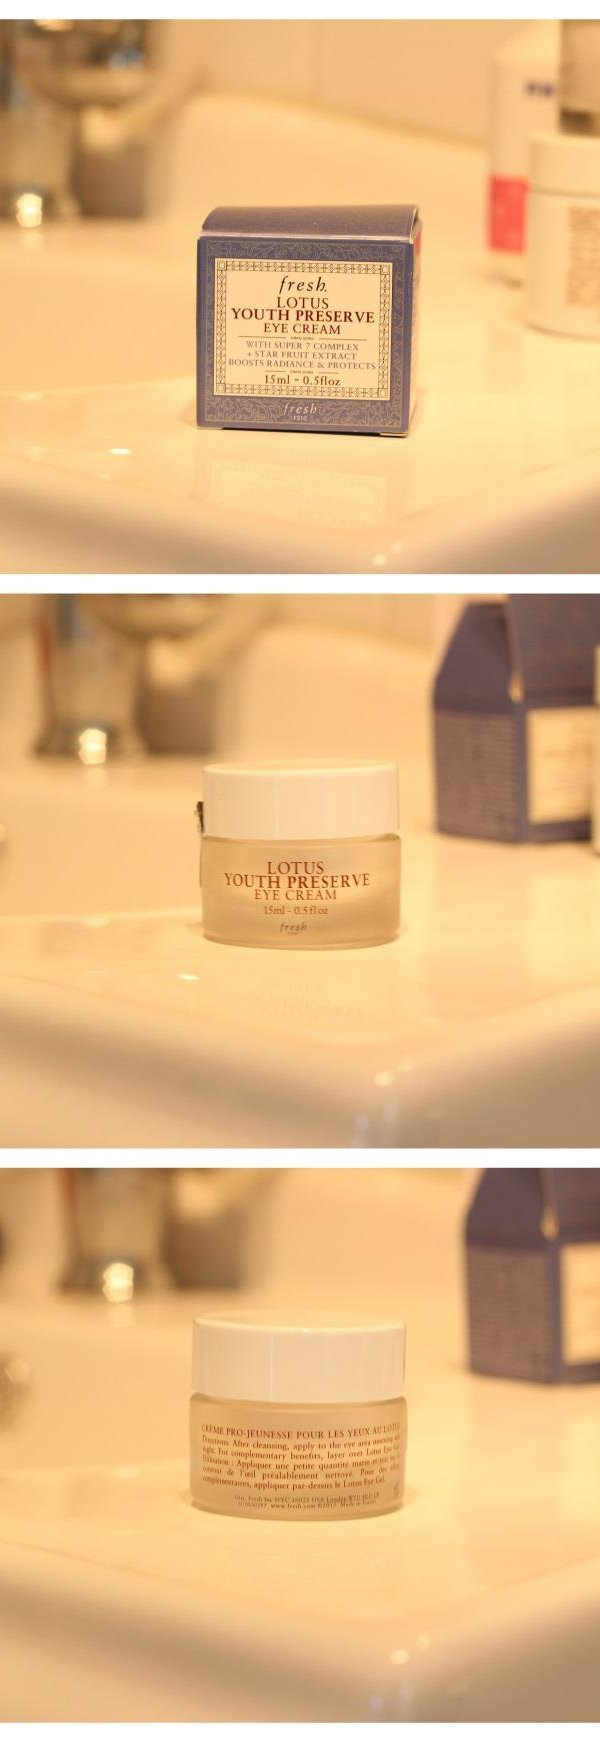 Lotus Youth Preserve Eye Cream Review